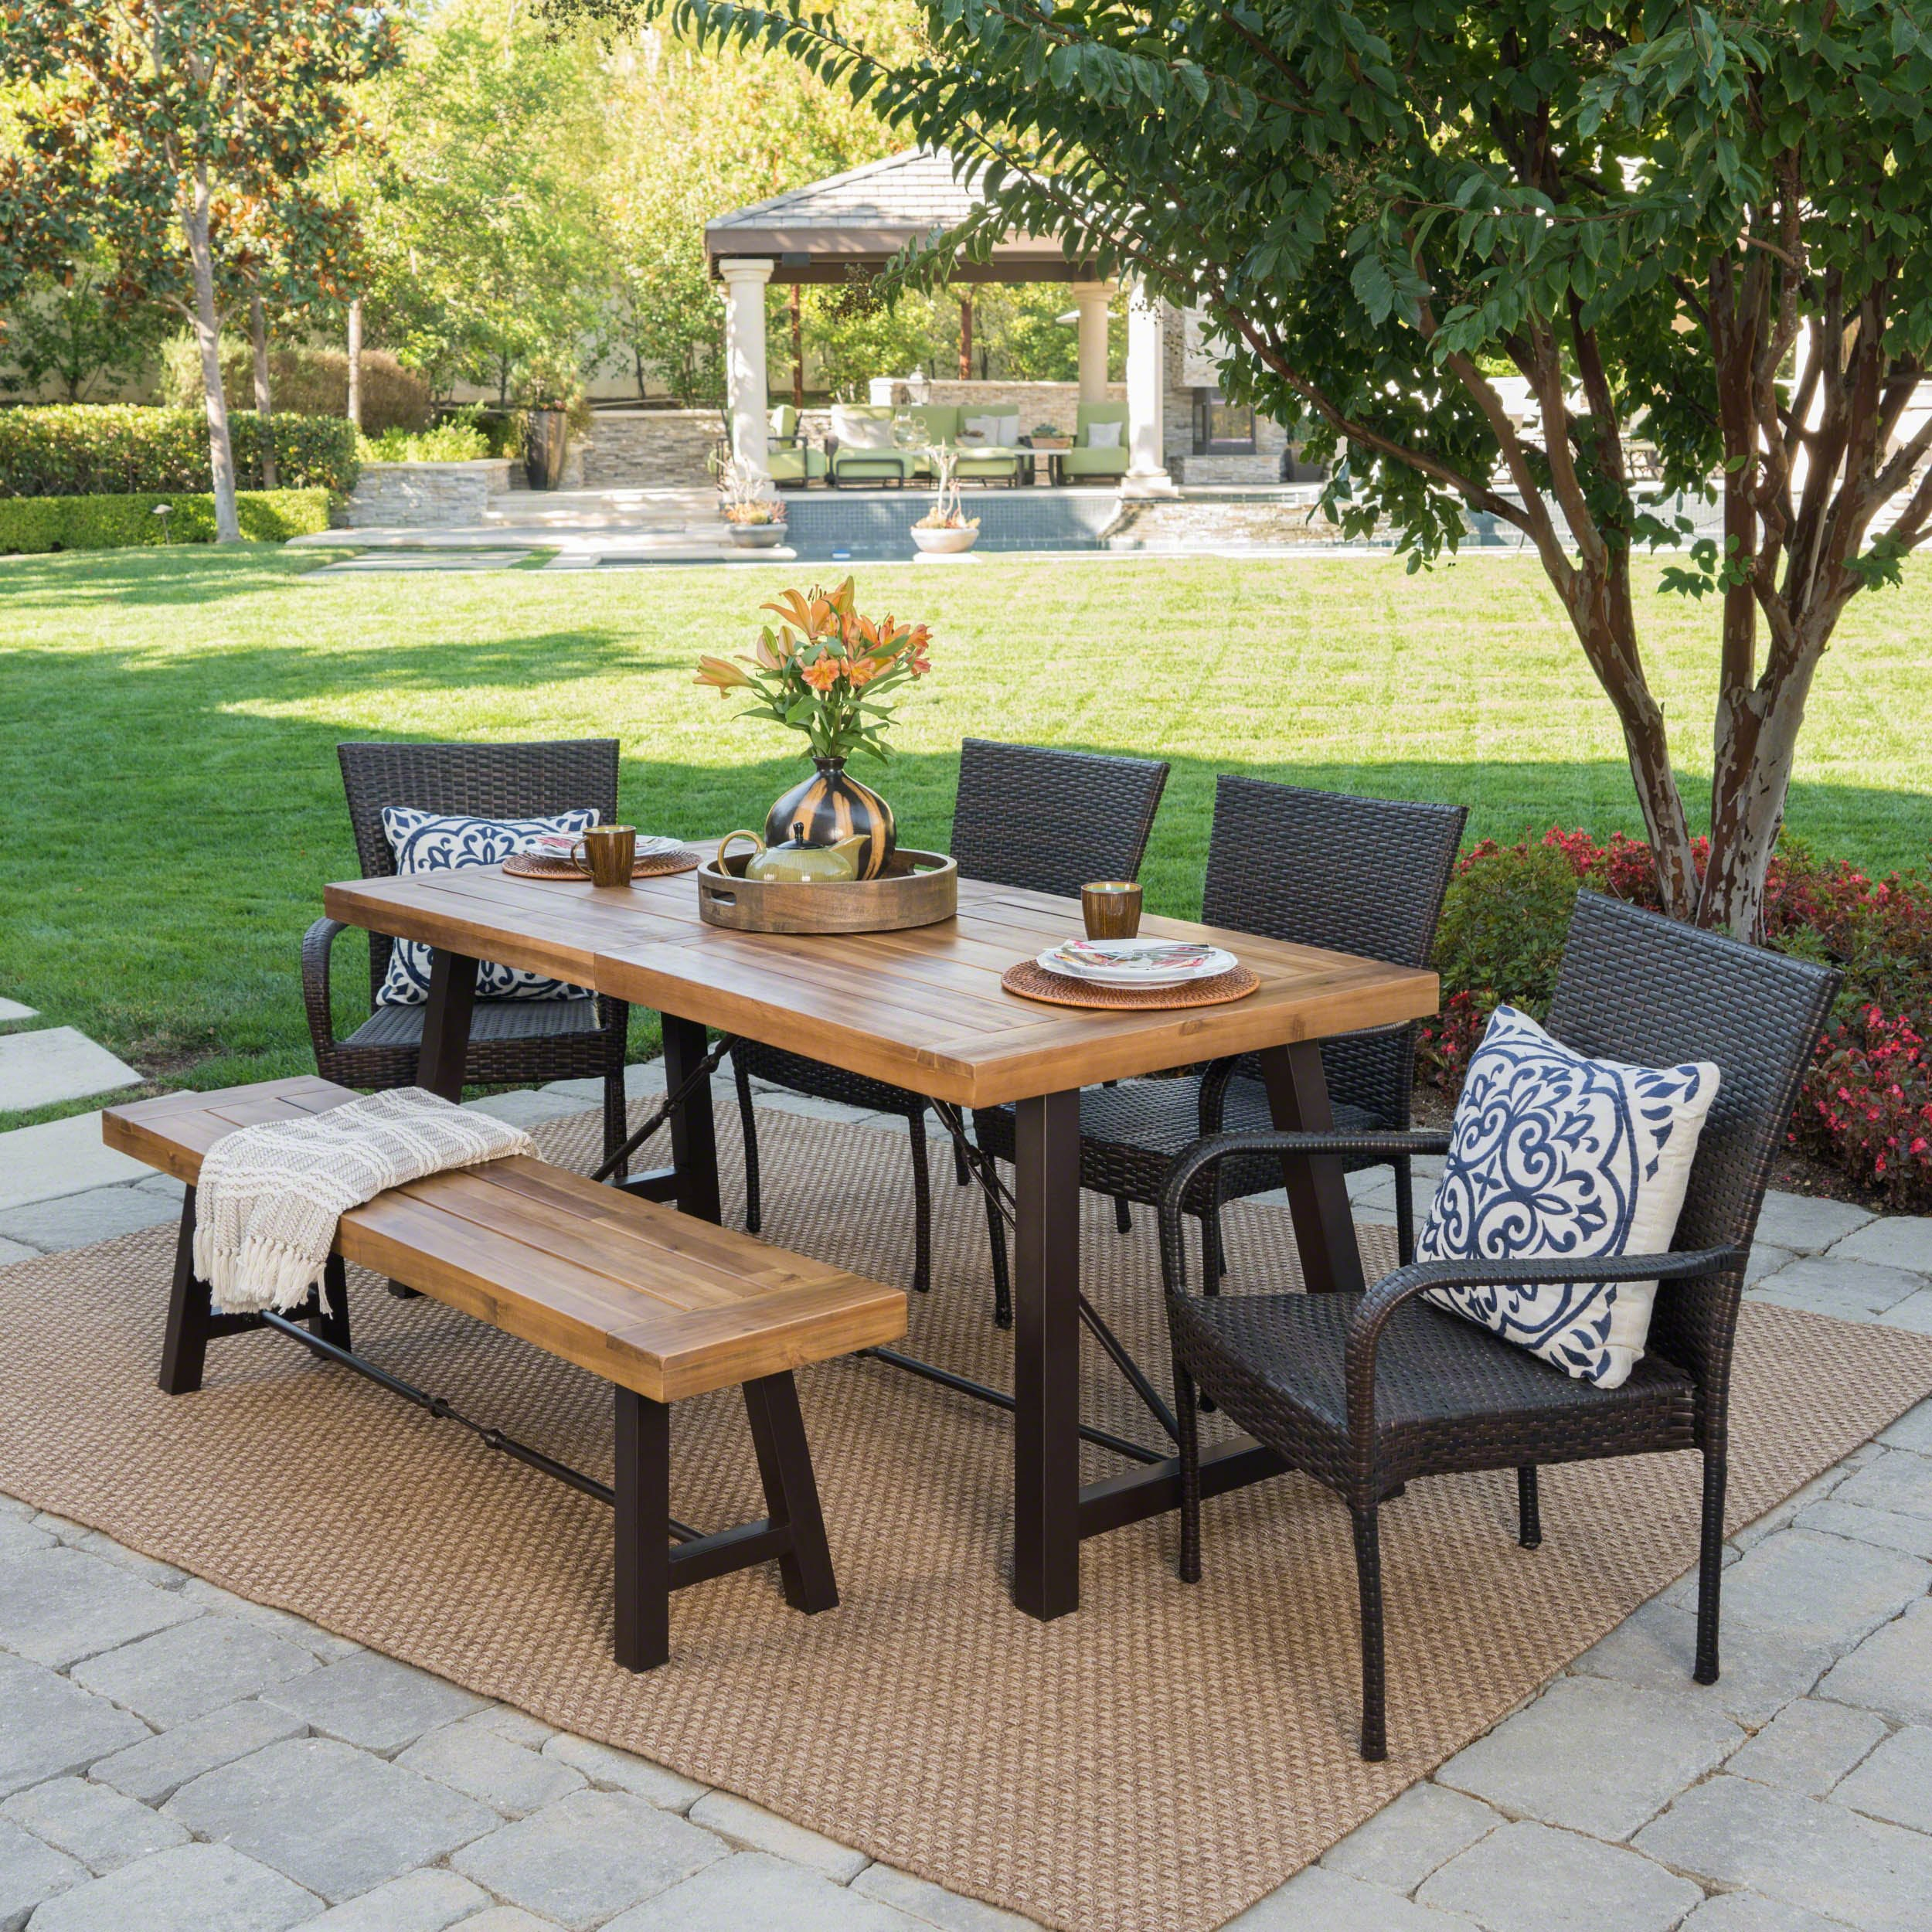 Great Deal Furniture Salla | 6 Piece Outdoor Acacia Wood Dining Set with Wicker Stacking Chairs | in Multibrown with Teak Finish by Great Deal Furniture (Image #1)